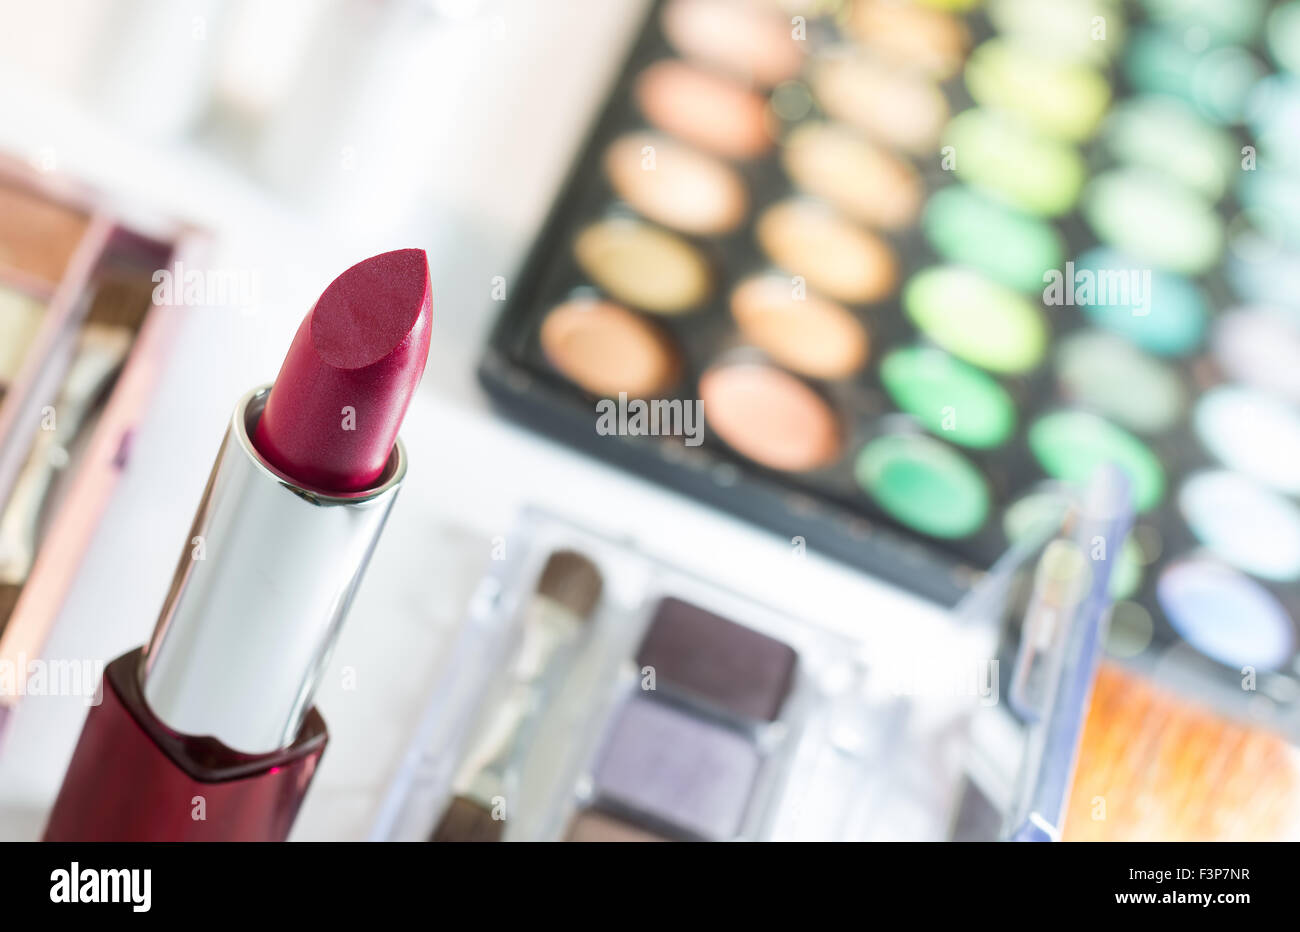 Red lipstick with blur cosmetics background such as makeup palette     Red lipstick with blur cosmetics background such as makeup palette and  blush on and negative space for word and text